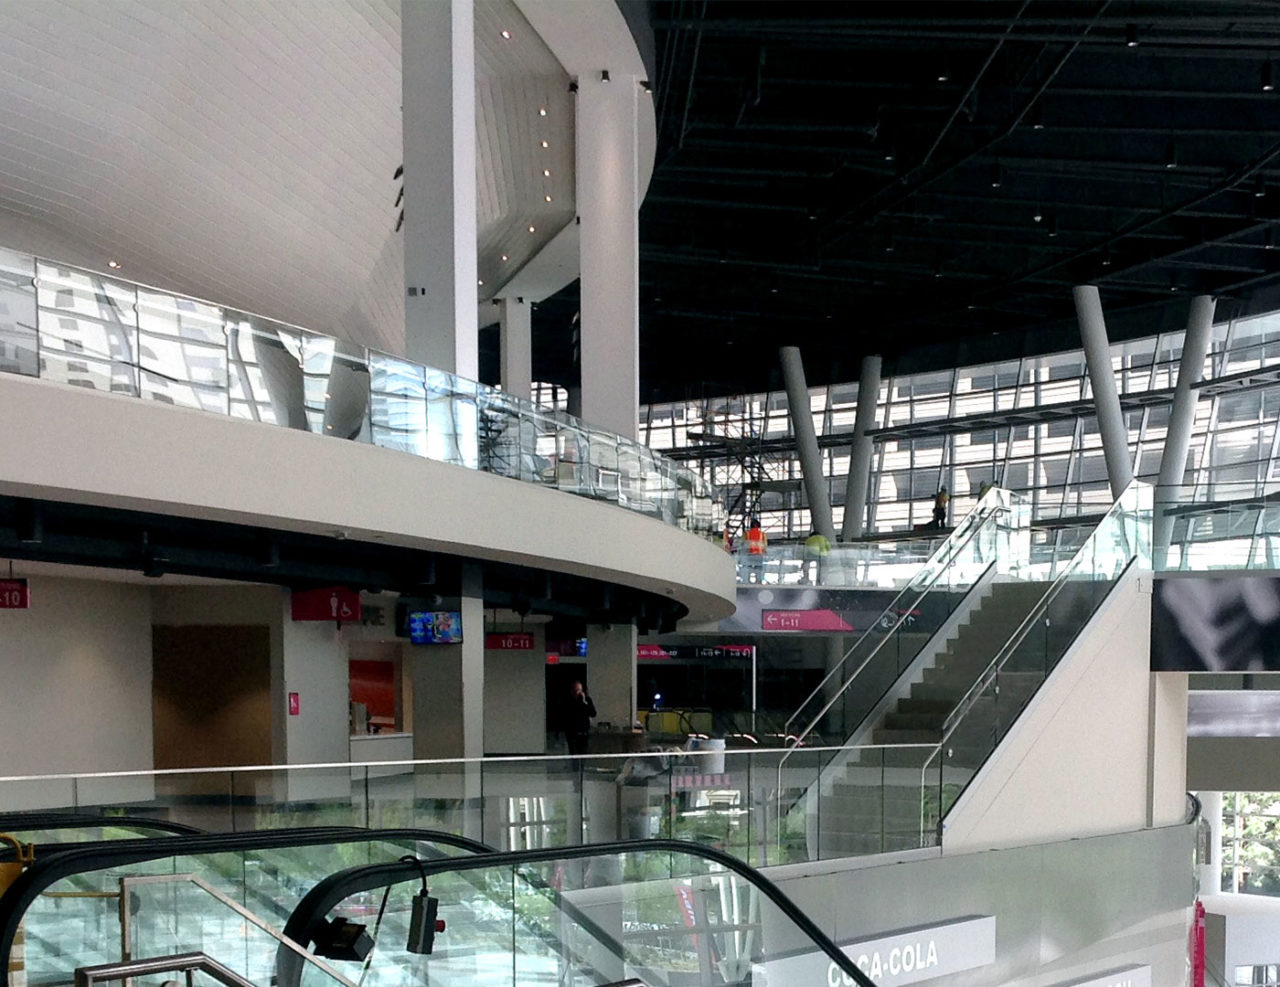 Glass Base Shoe railing on concourse stairs and balcony overlooks